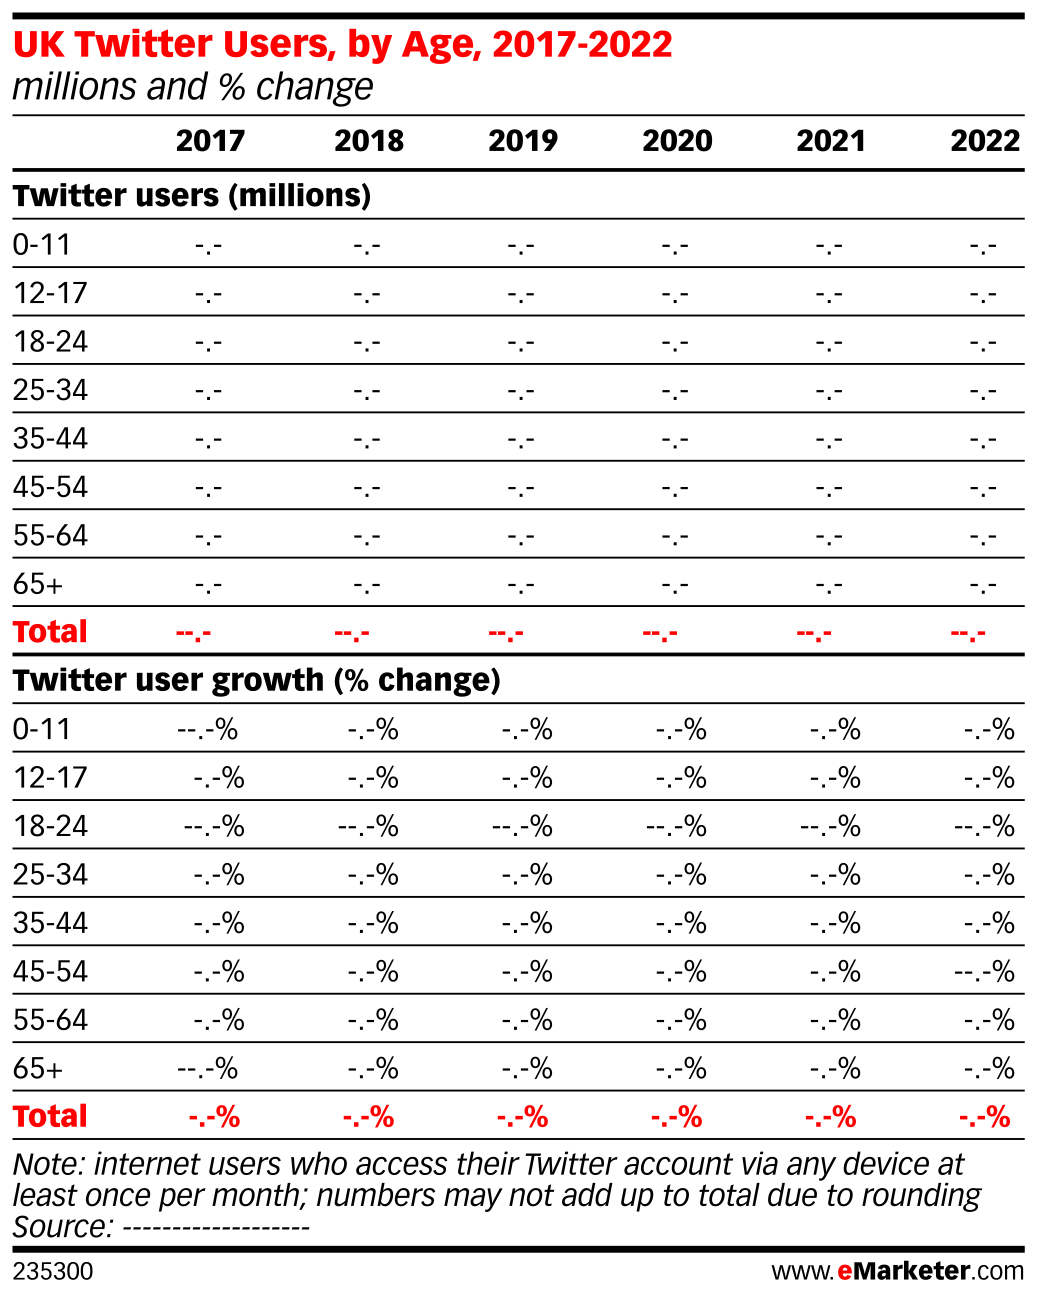 UK Twitter Users, by Age, 2017-2022 (millions and % change)